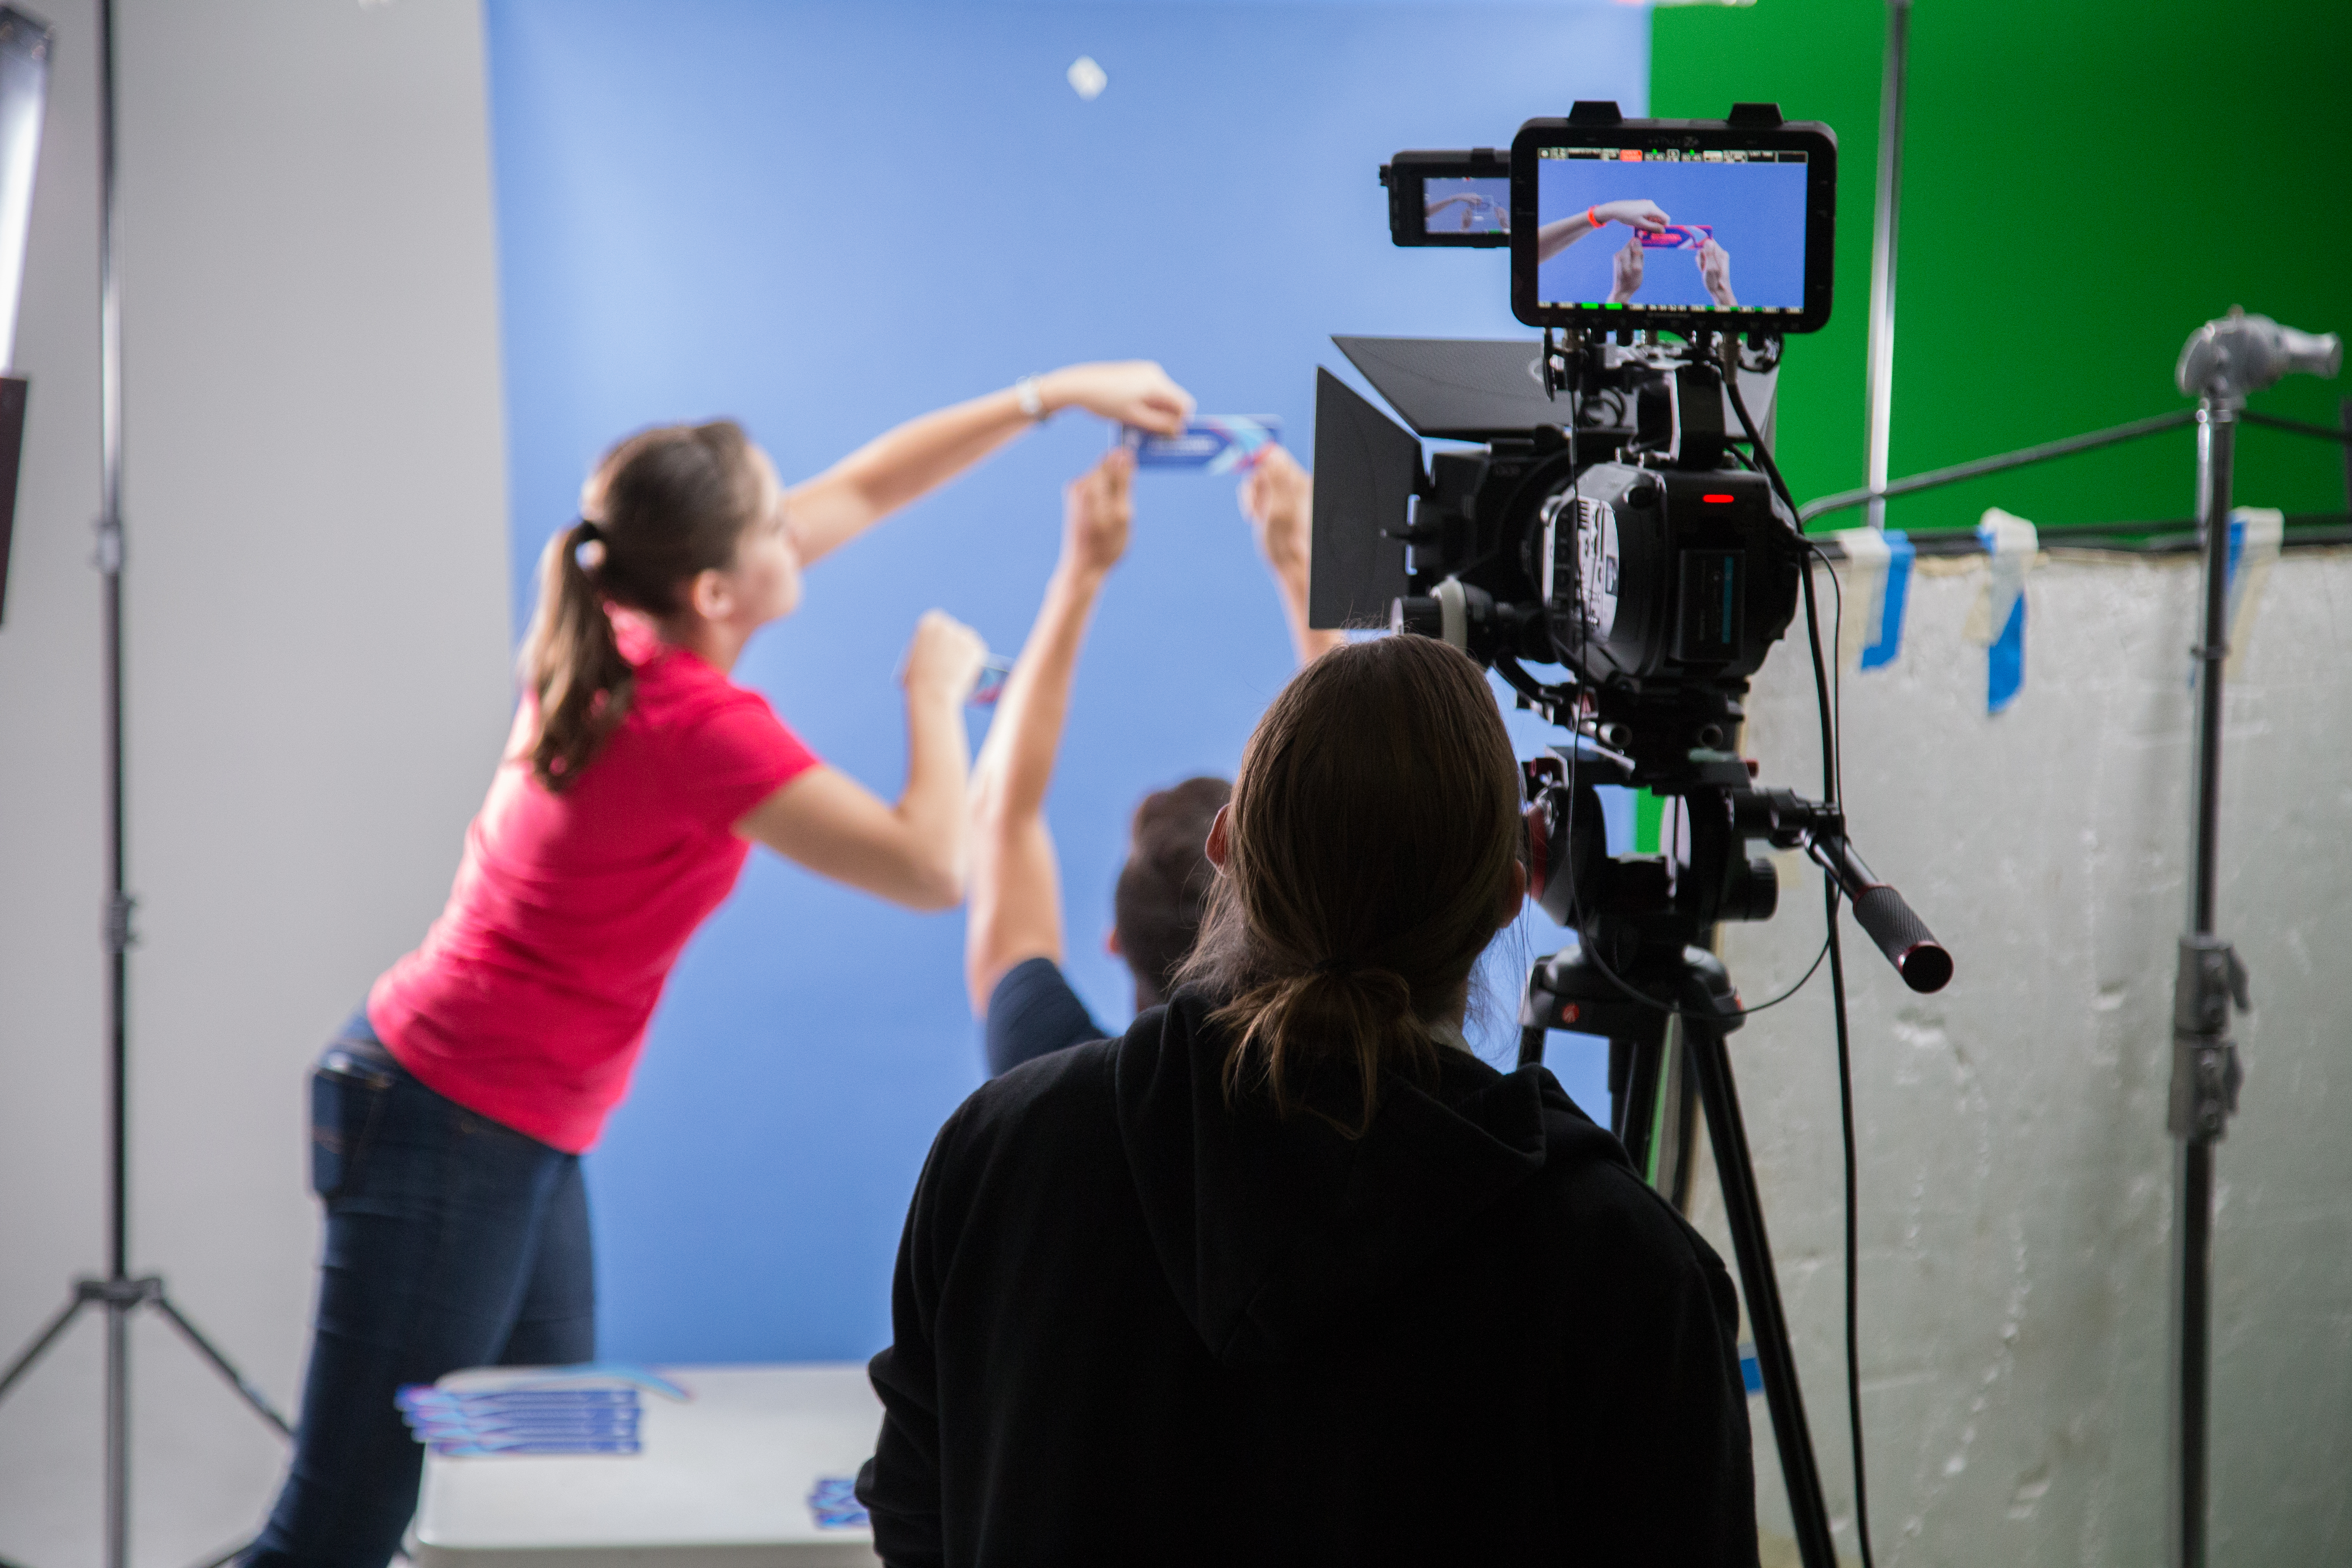 Behind the scenes commercial shoot from directors camera perspective